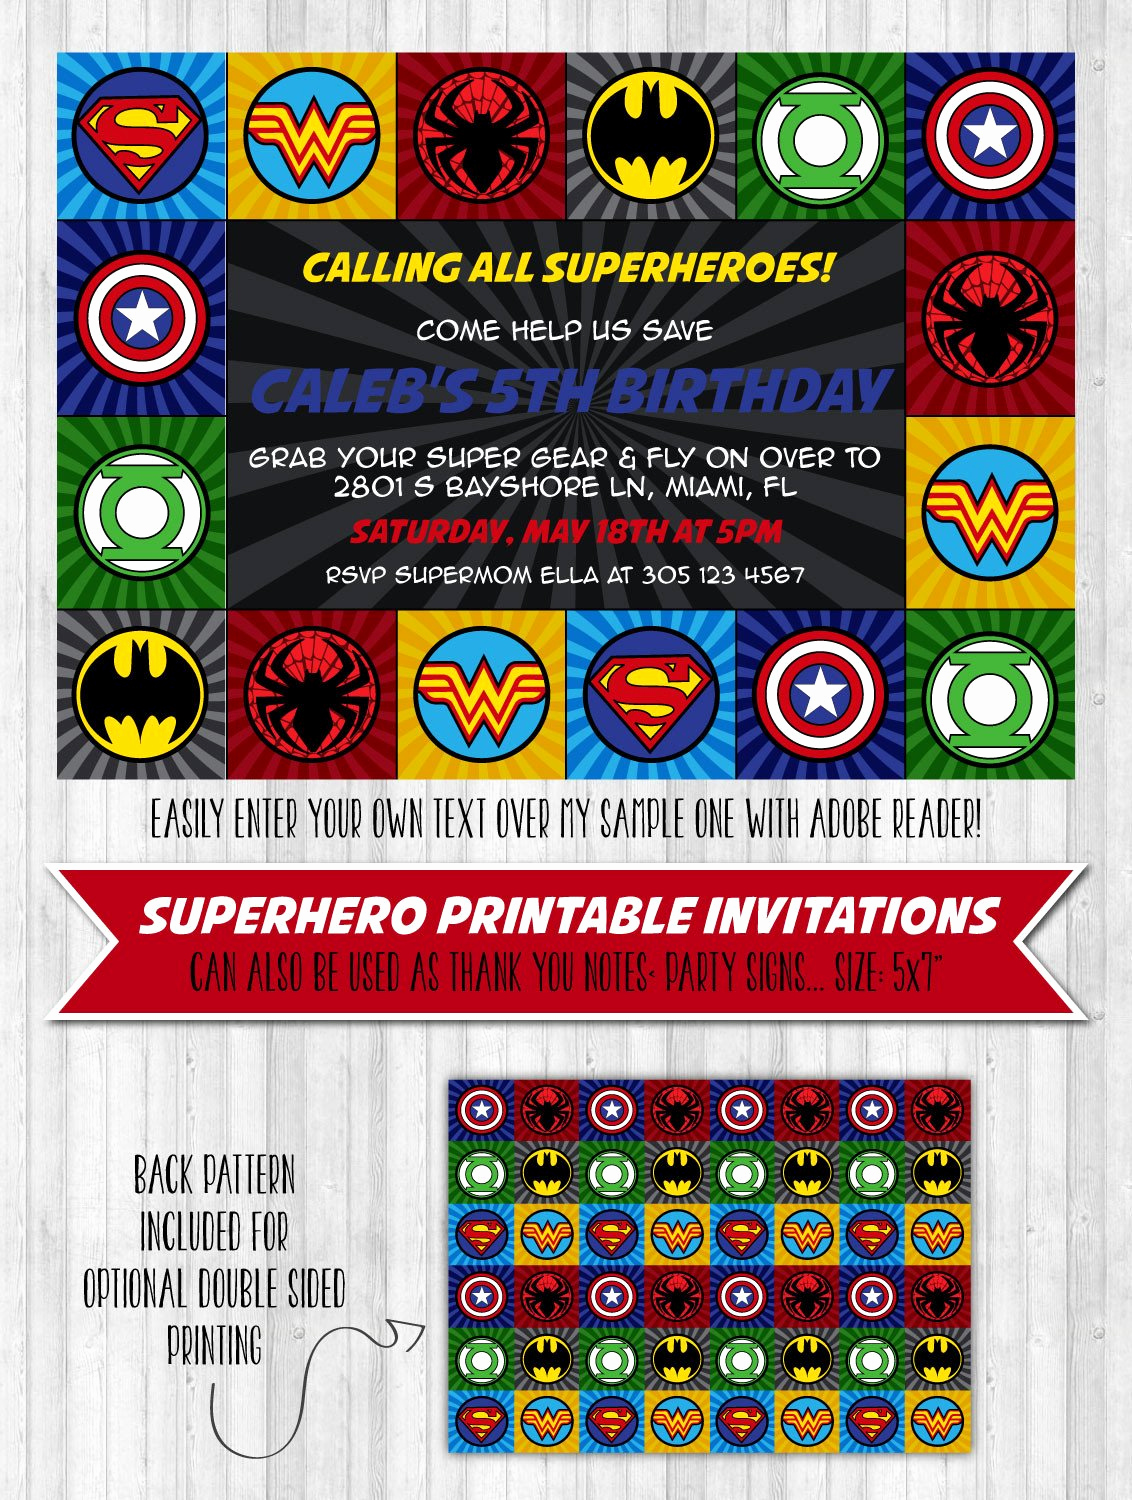 Superhero Birthday Invitation Wording Lovely Superhero Party Invitation – Wonderbash